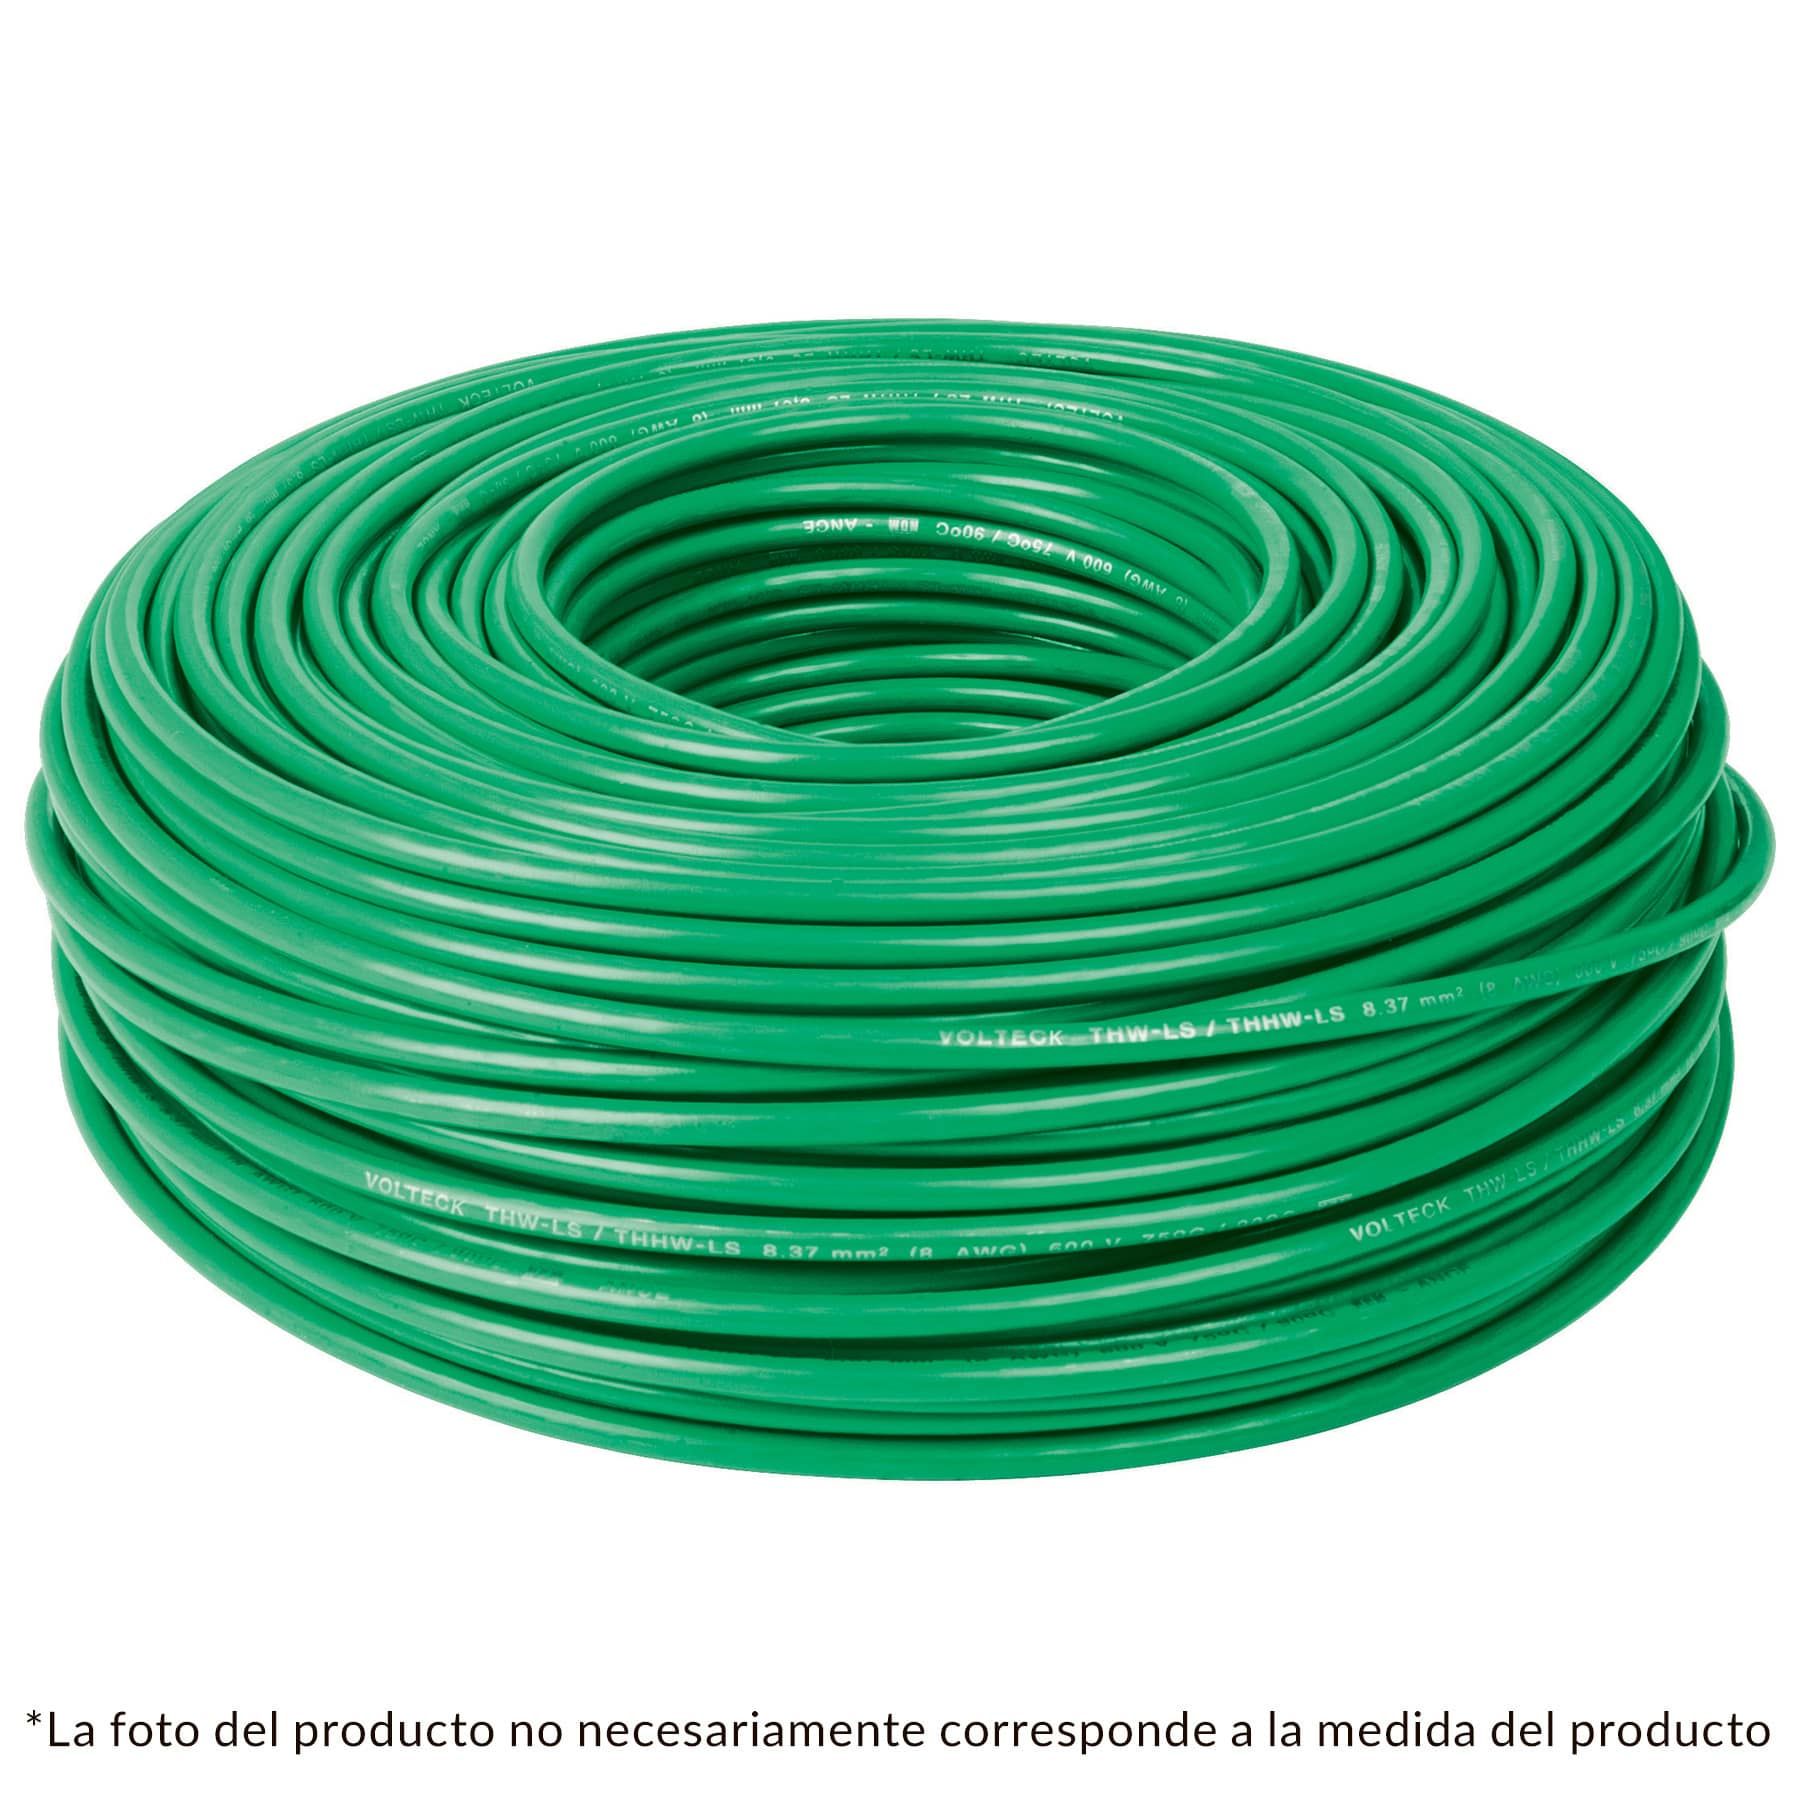 Cable THHW-LS, 10 AWG, color verde rollo 100 m